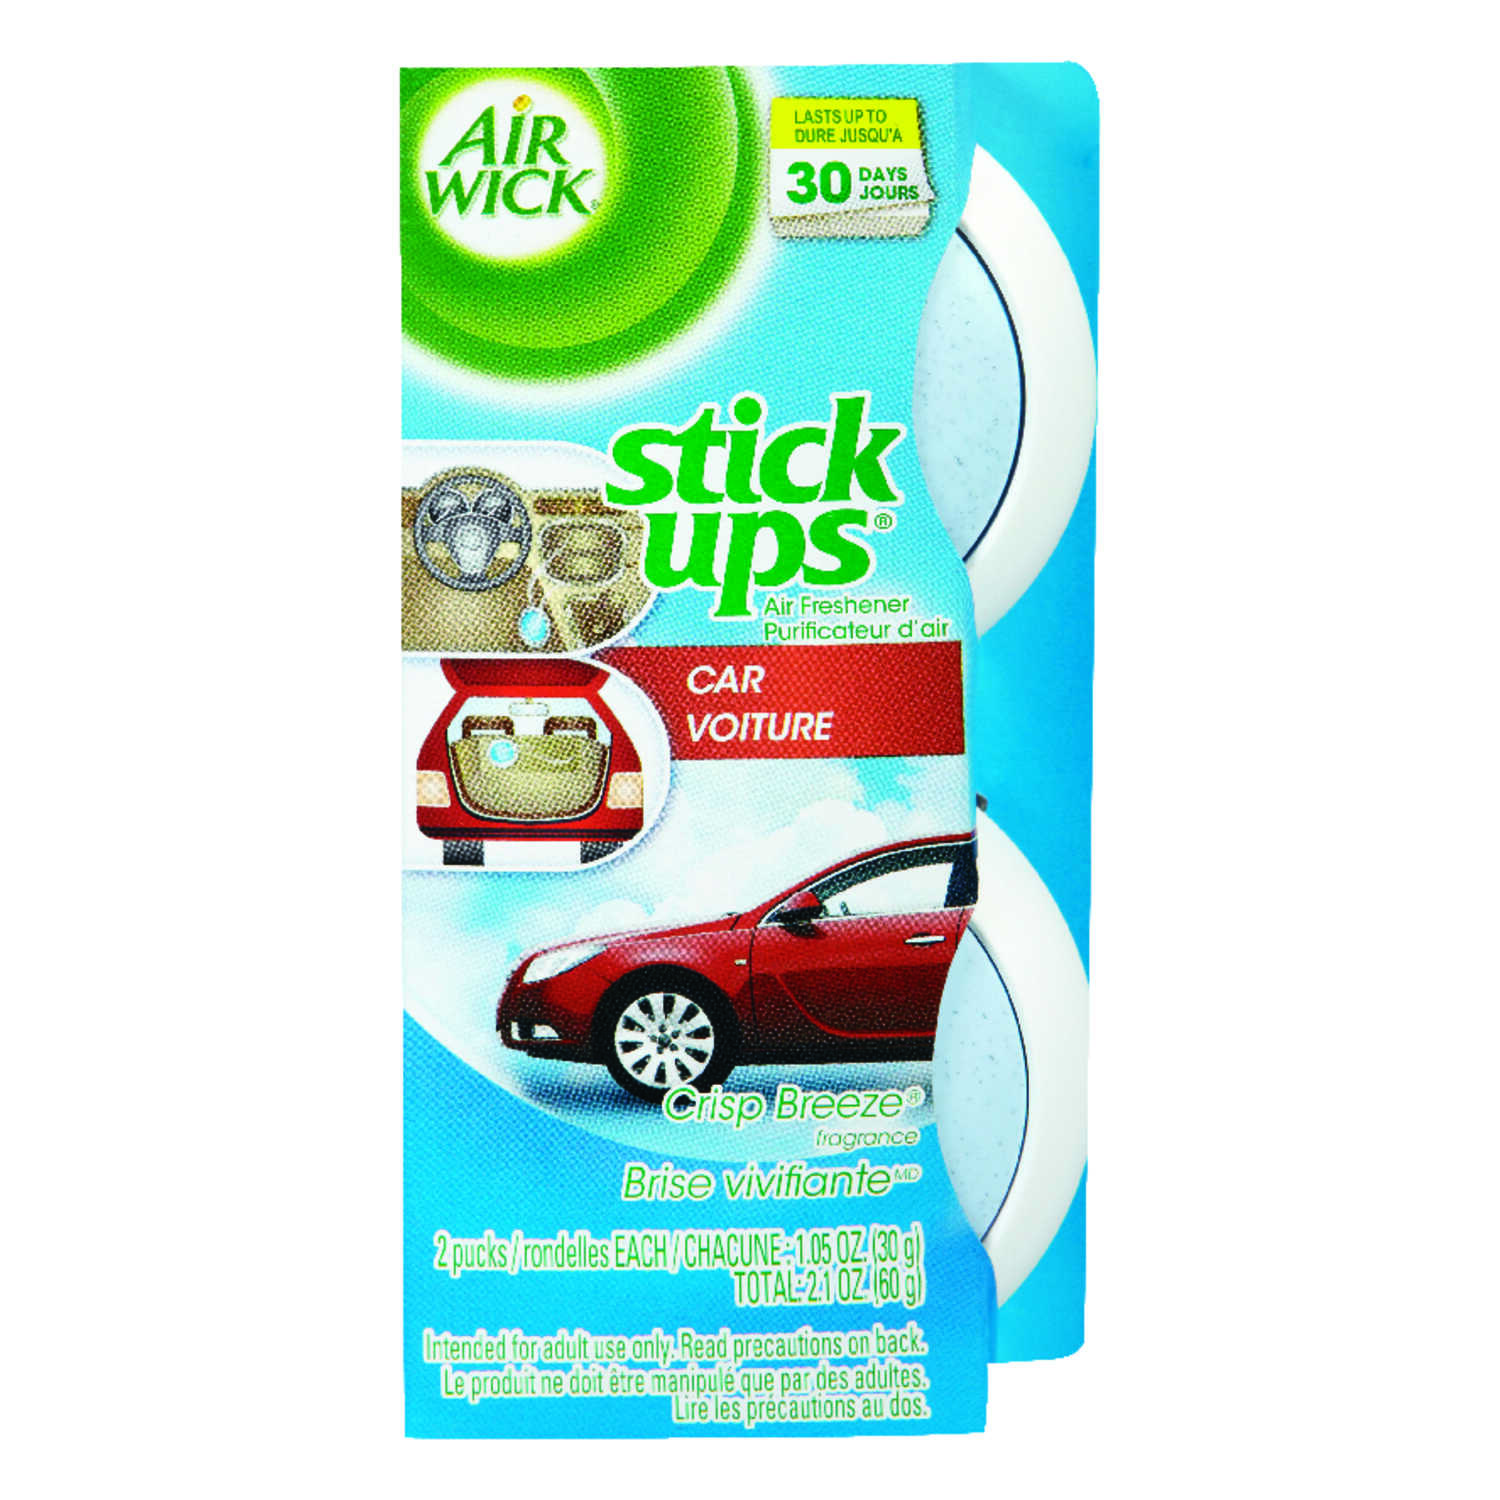 Air Wick  Stick Ups  Crisp Breeze Scent Air Freshener  2.1 oz. Solid